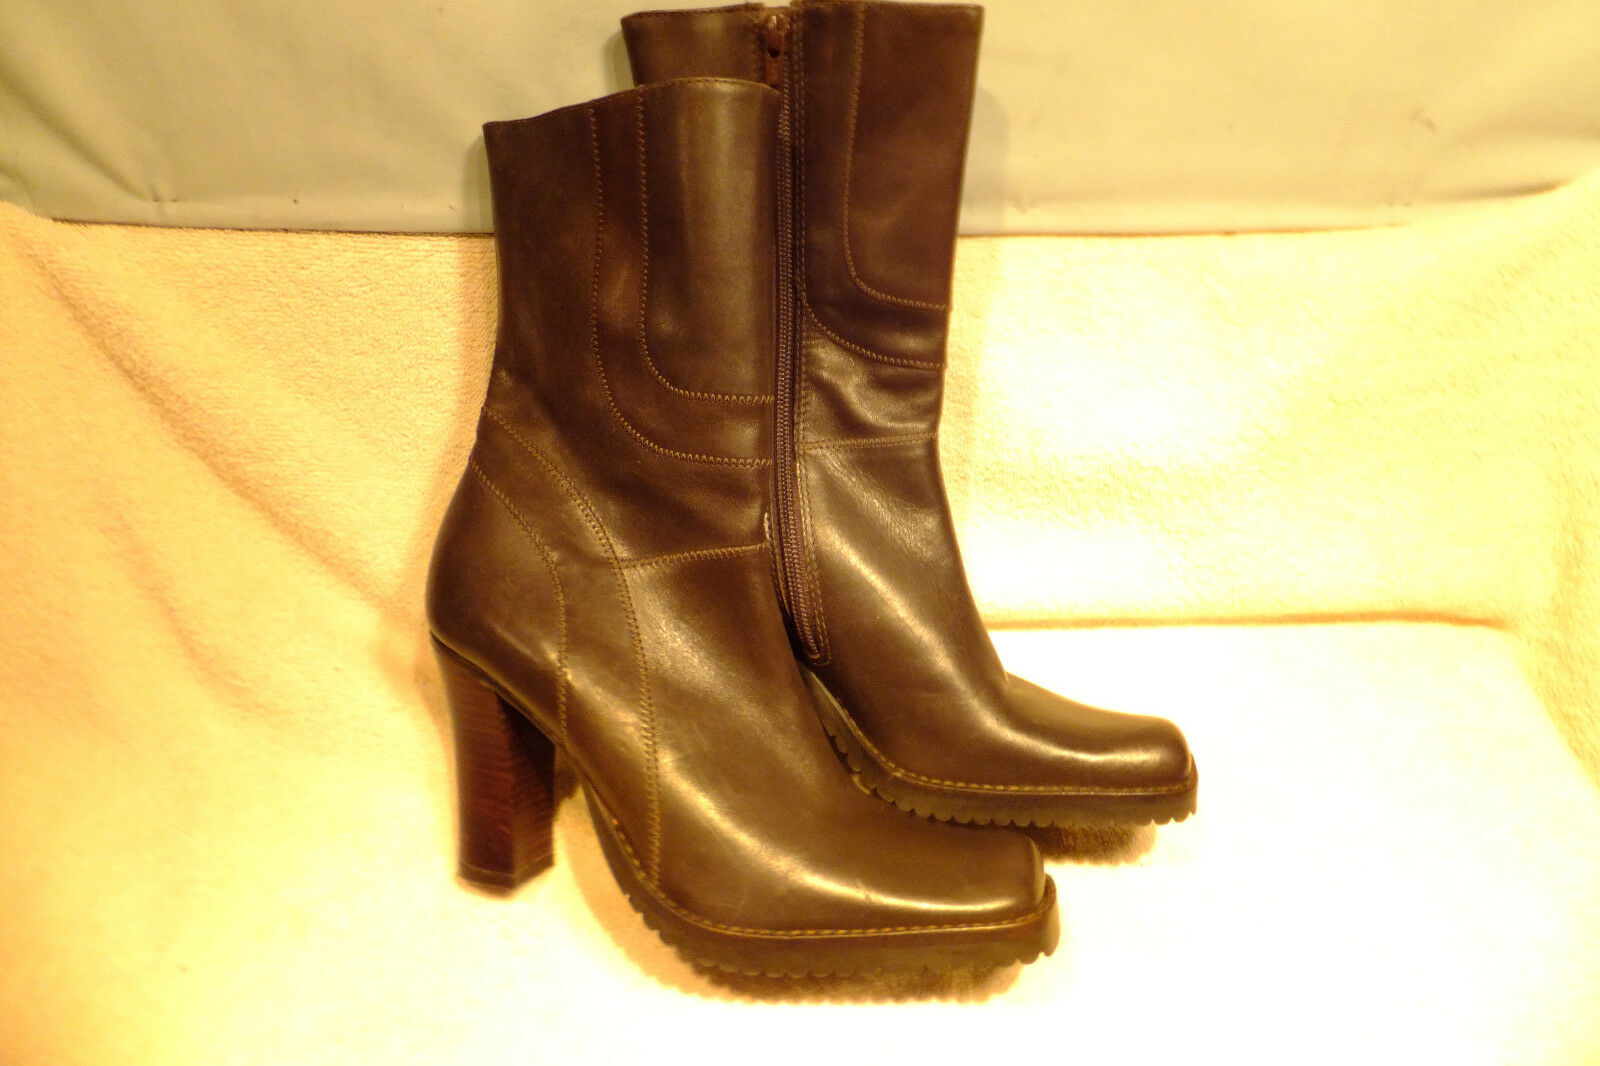 Steve Madden Brown Leather 3.75  Heel Side Zip 7 Ankle Boots Size 7M Never Worn